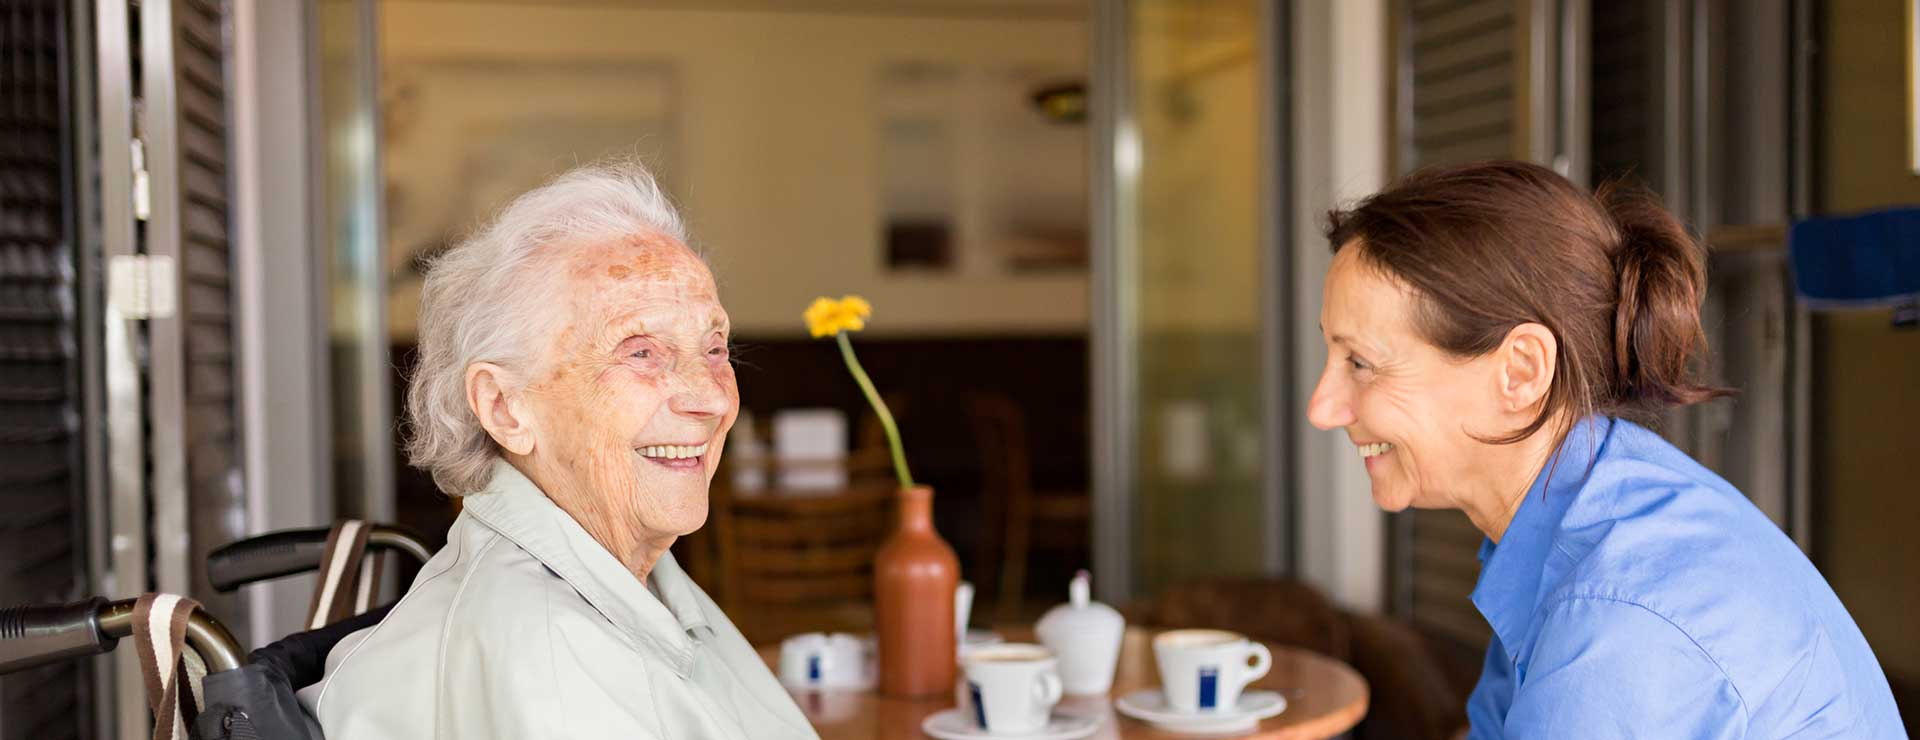 A senior woman at home with her caregiver